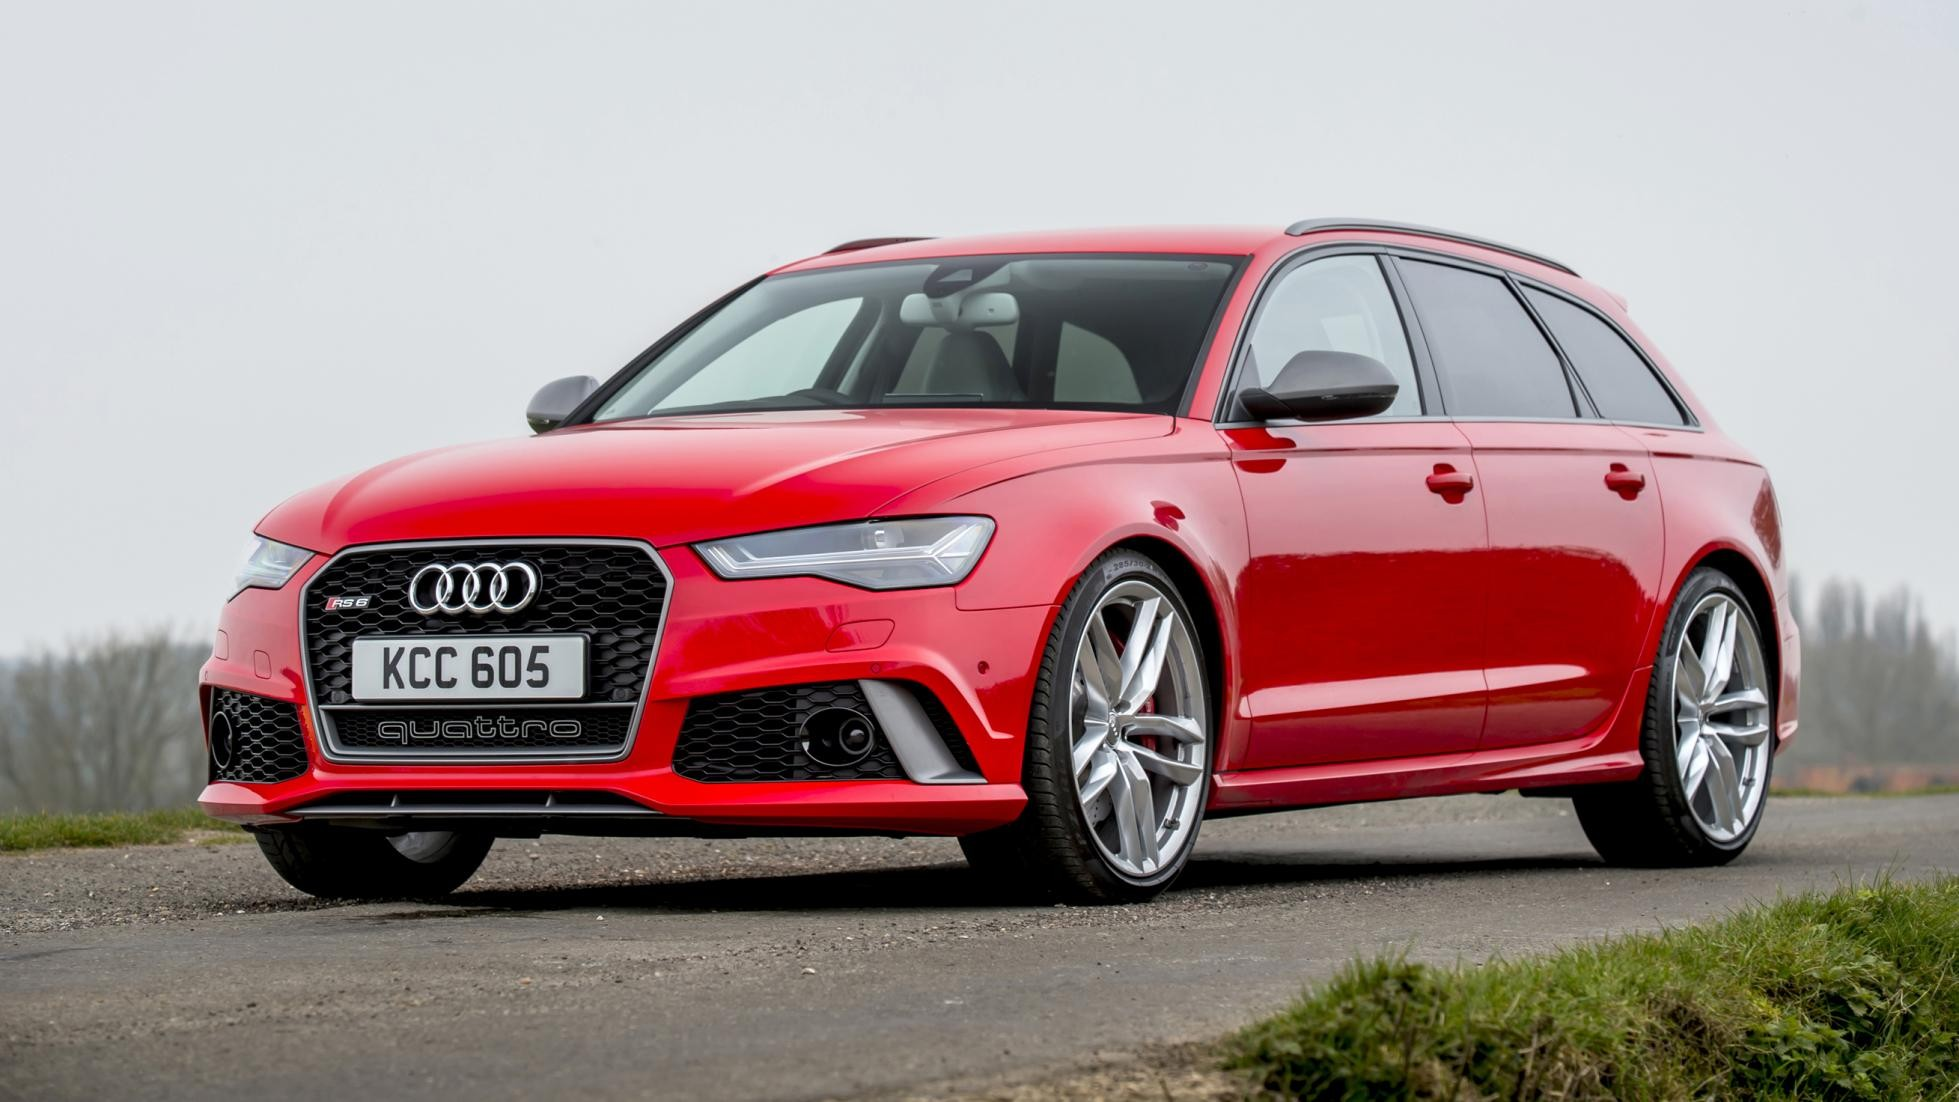 background - Audi RS 6 Avant performance